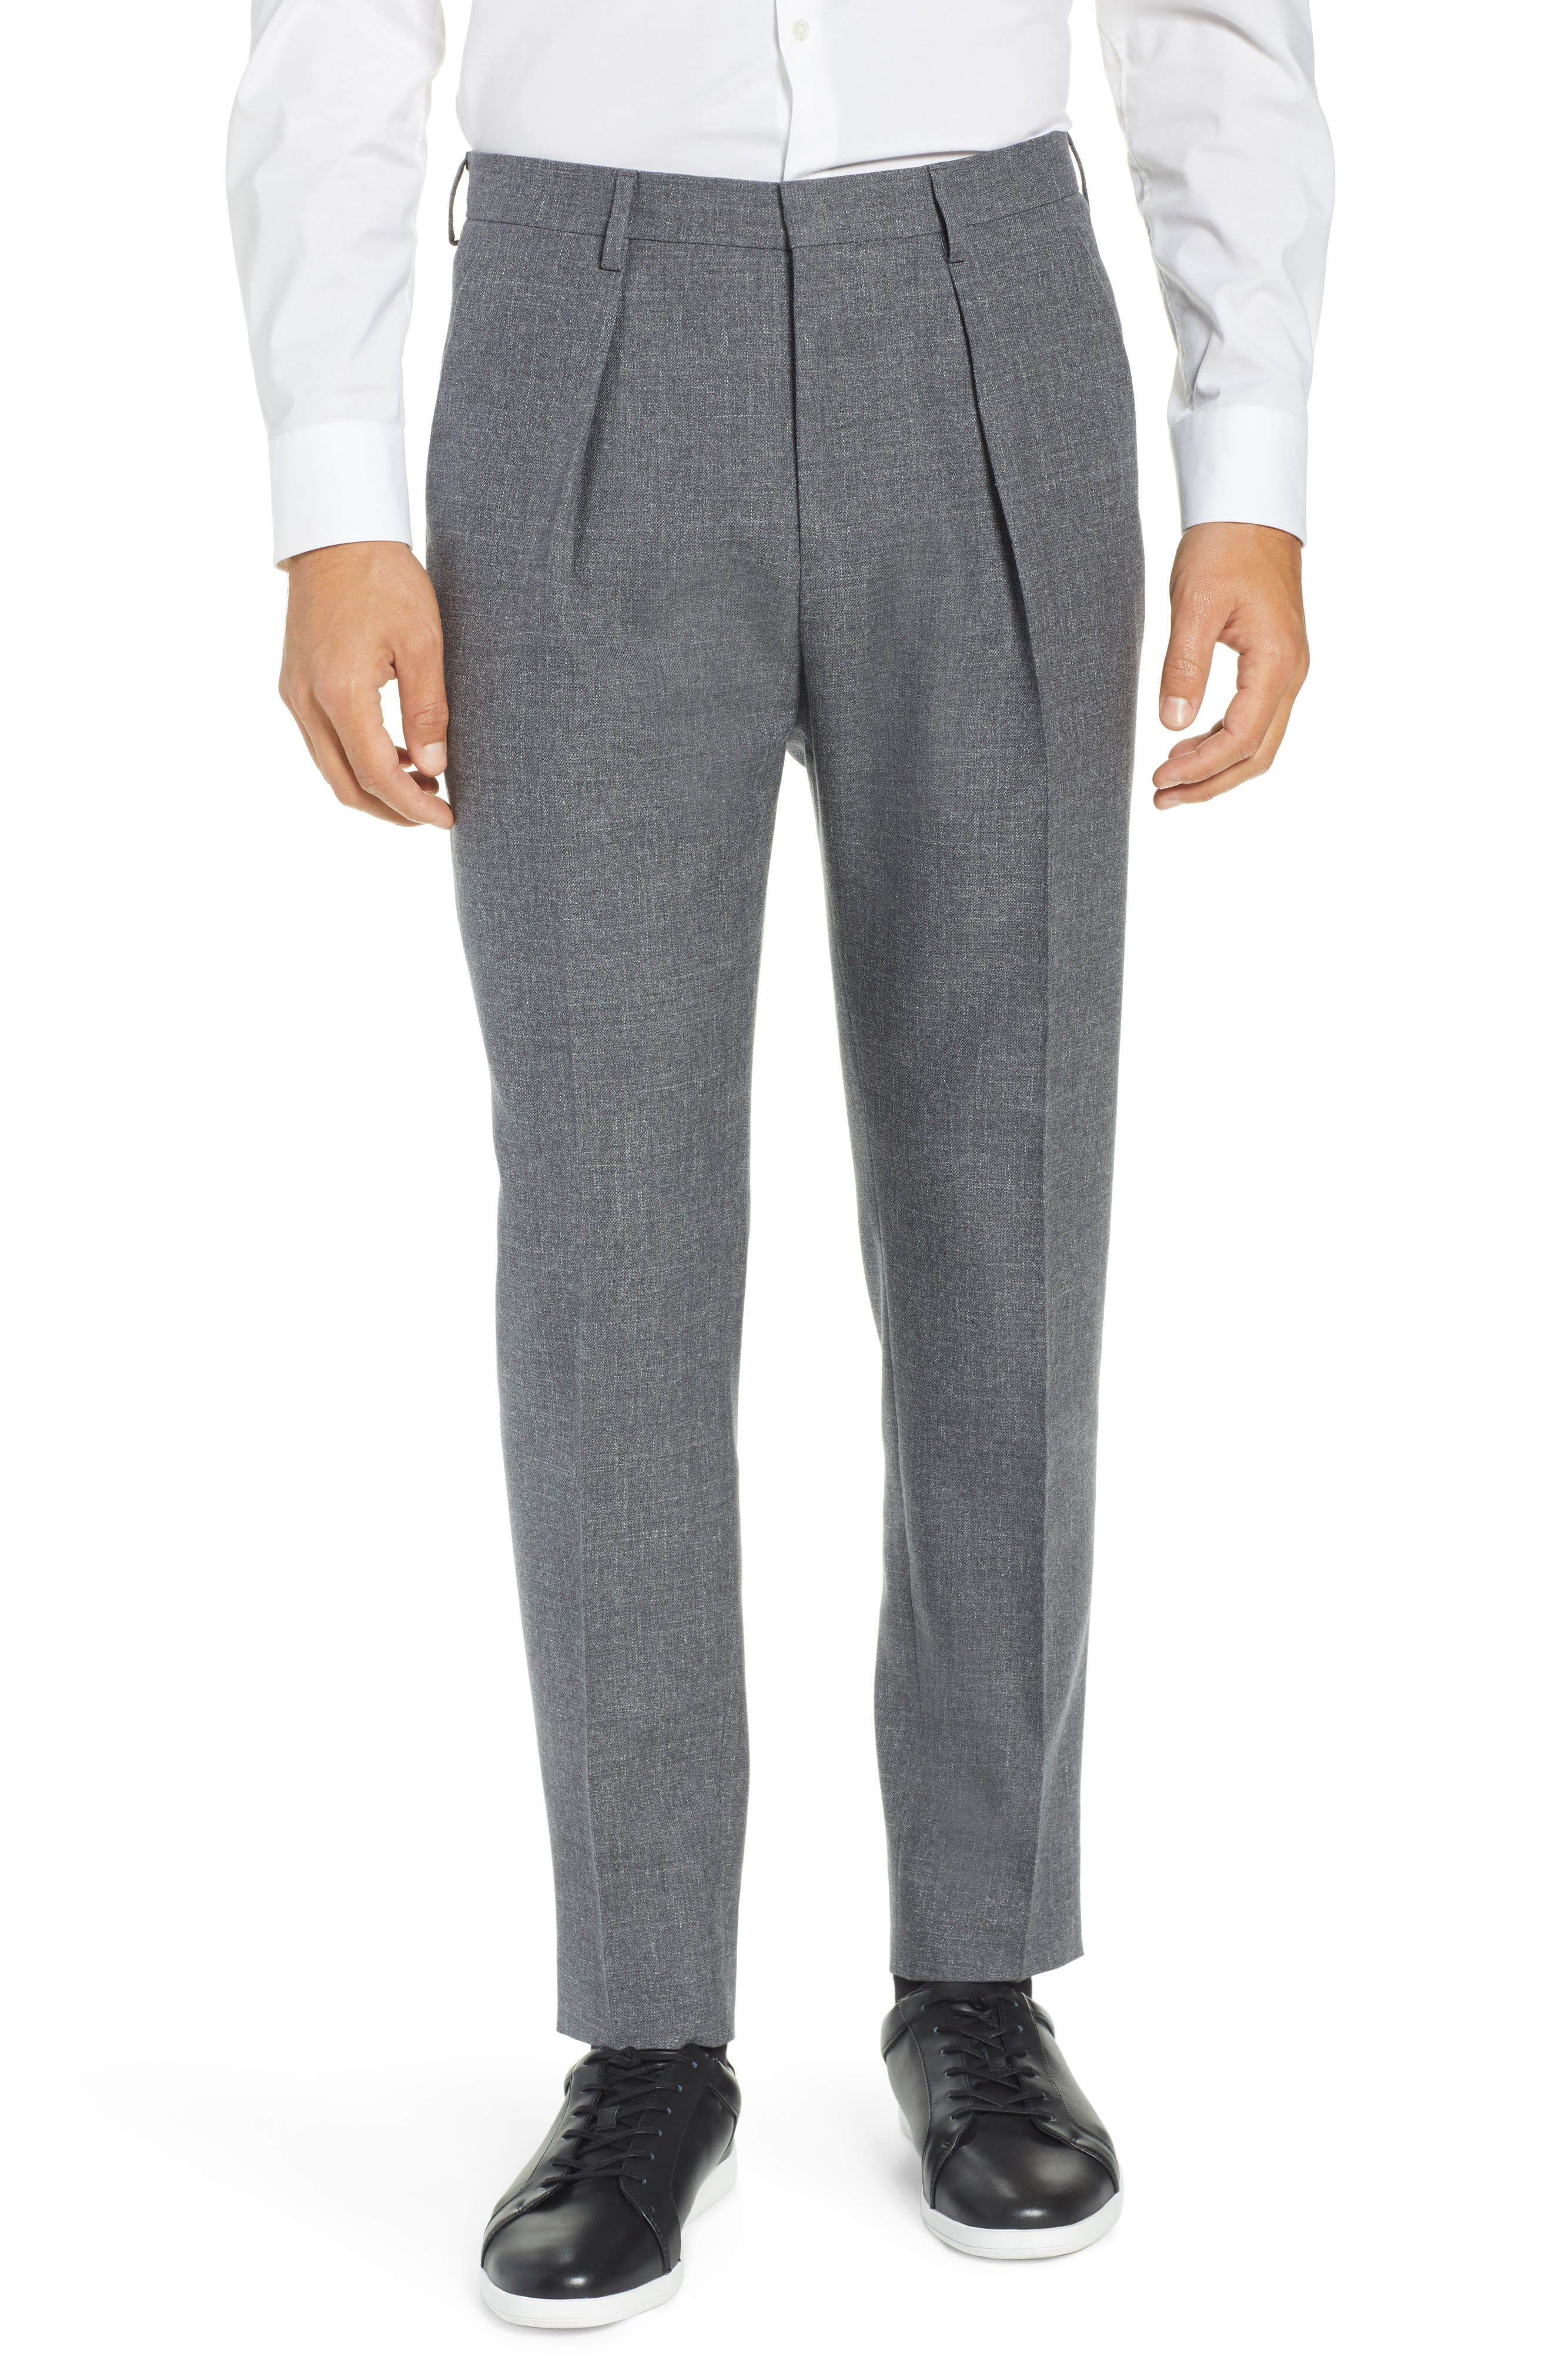 Ole Pleated Solid Wool & Cotton Trousers,                             Main thumbnail 1, color,                             MEDIUM GREY